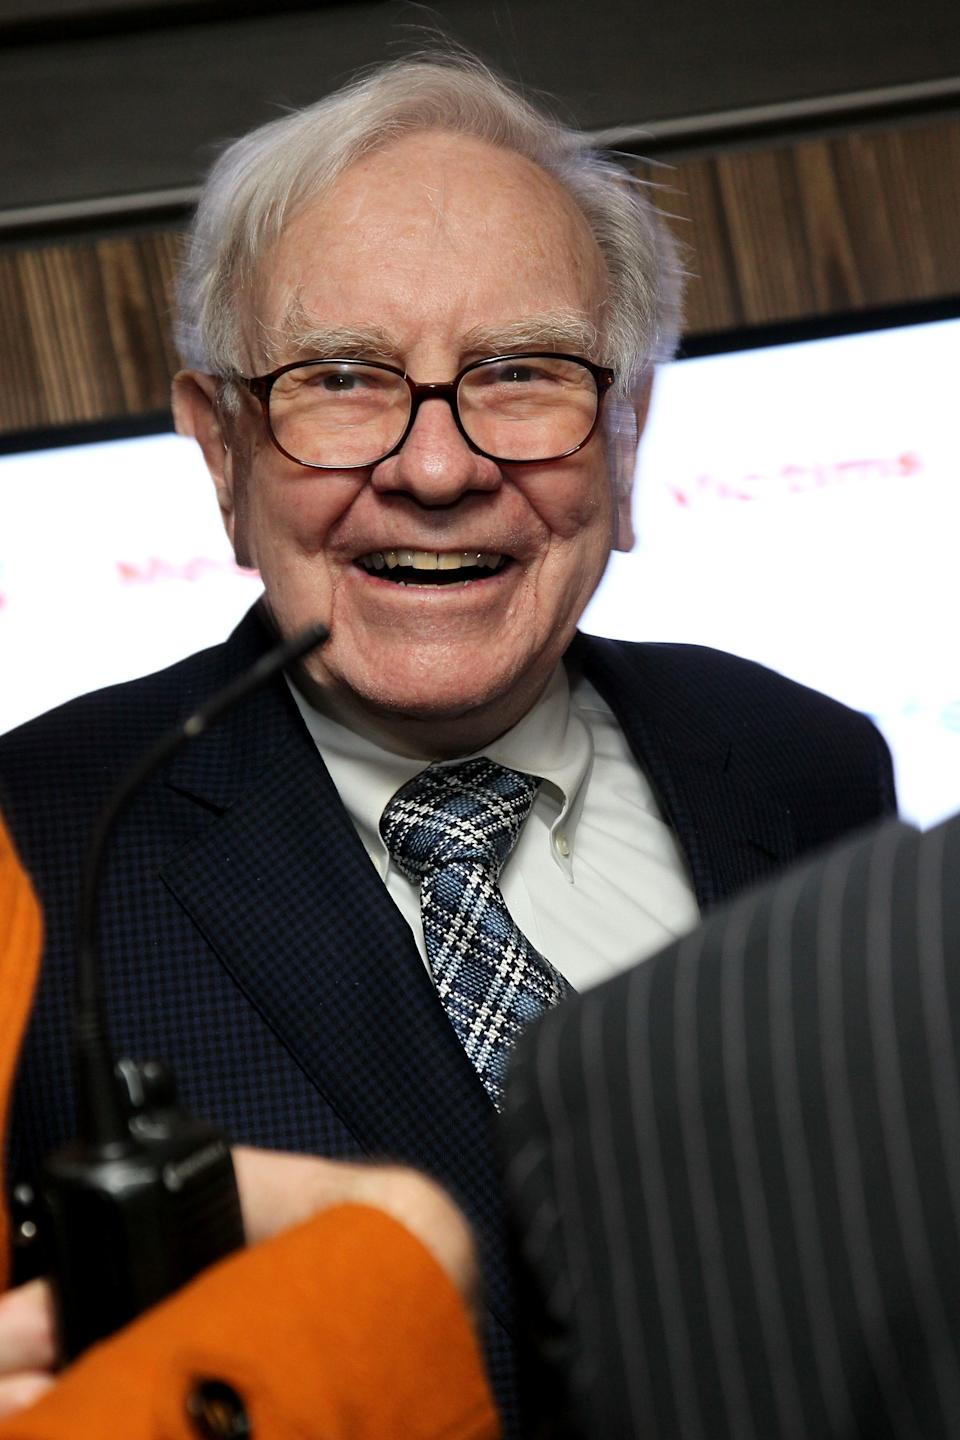 <b>Warren Buffett </b> lives a modest lifestyle despite his net worth of around $44 billion. He purchased a five-bedroom house in Omaha in 1958 for $31,500 and has lived there ever since. Buffett doesn't spend his money on electronics and reportedly doesn't carry a cell phone or have a computer at his desk.